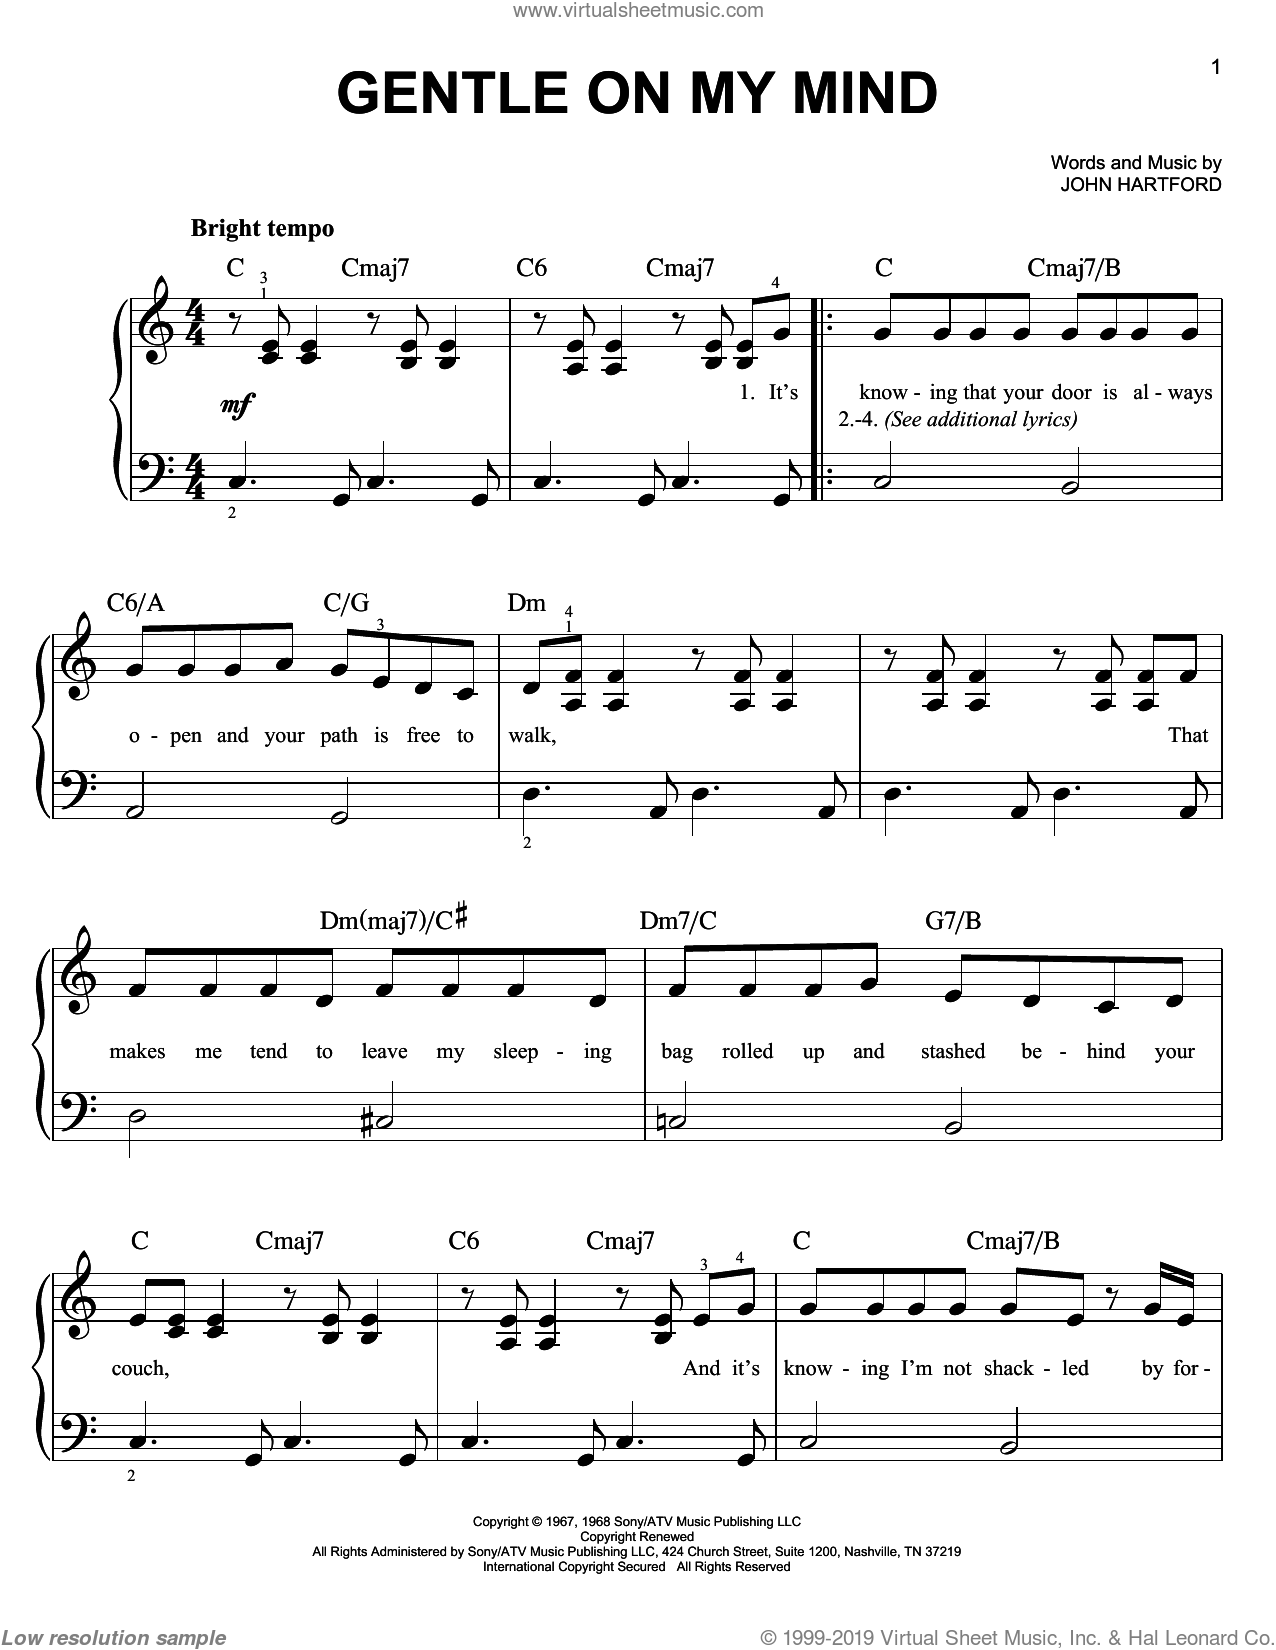 Gentle On My Mind sheet music for piano solo by John Hartford, Glen Campbell and Johnny Cash. Score Image Preview.